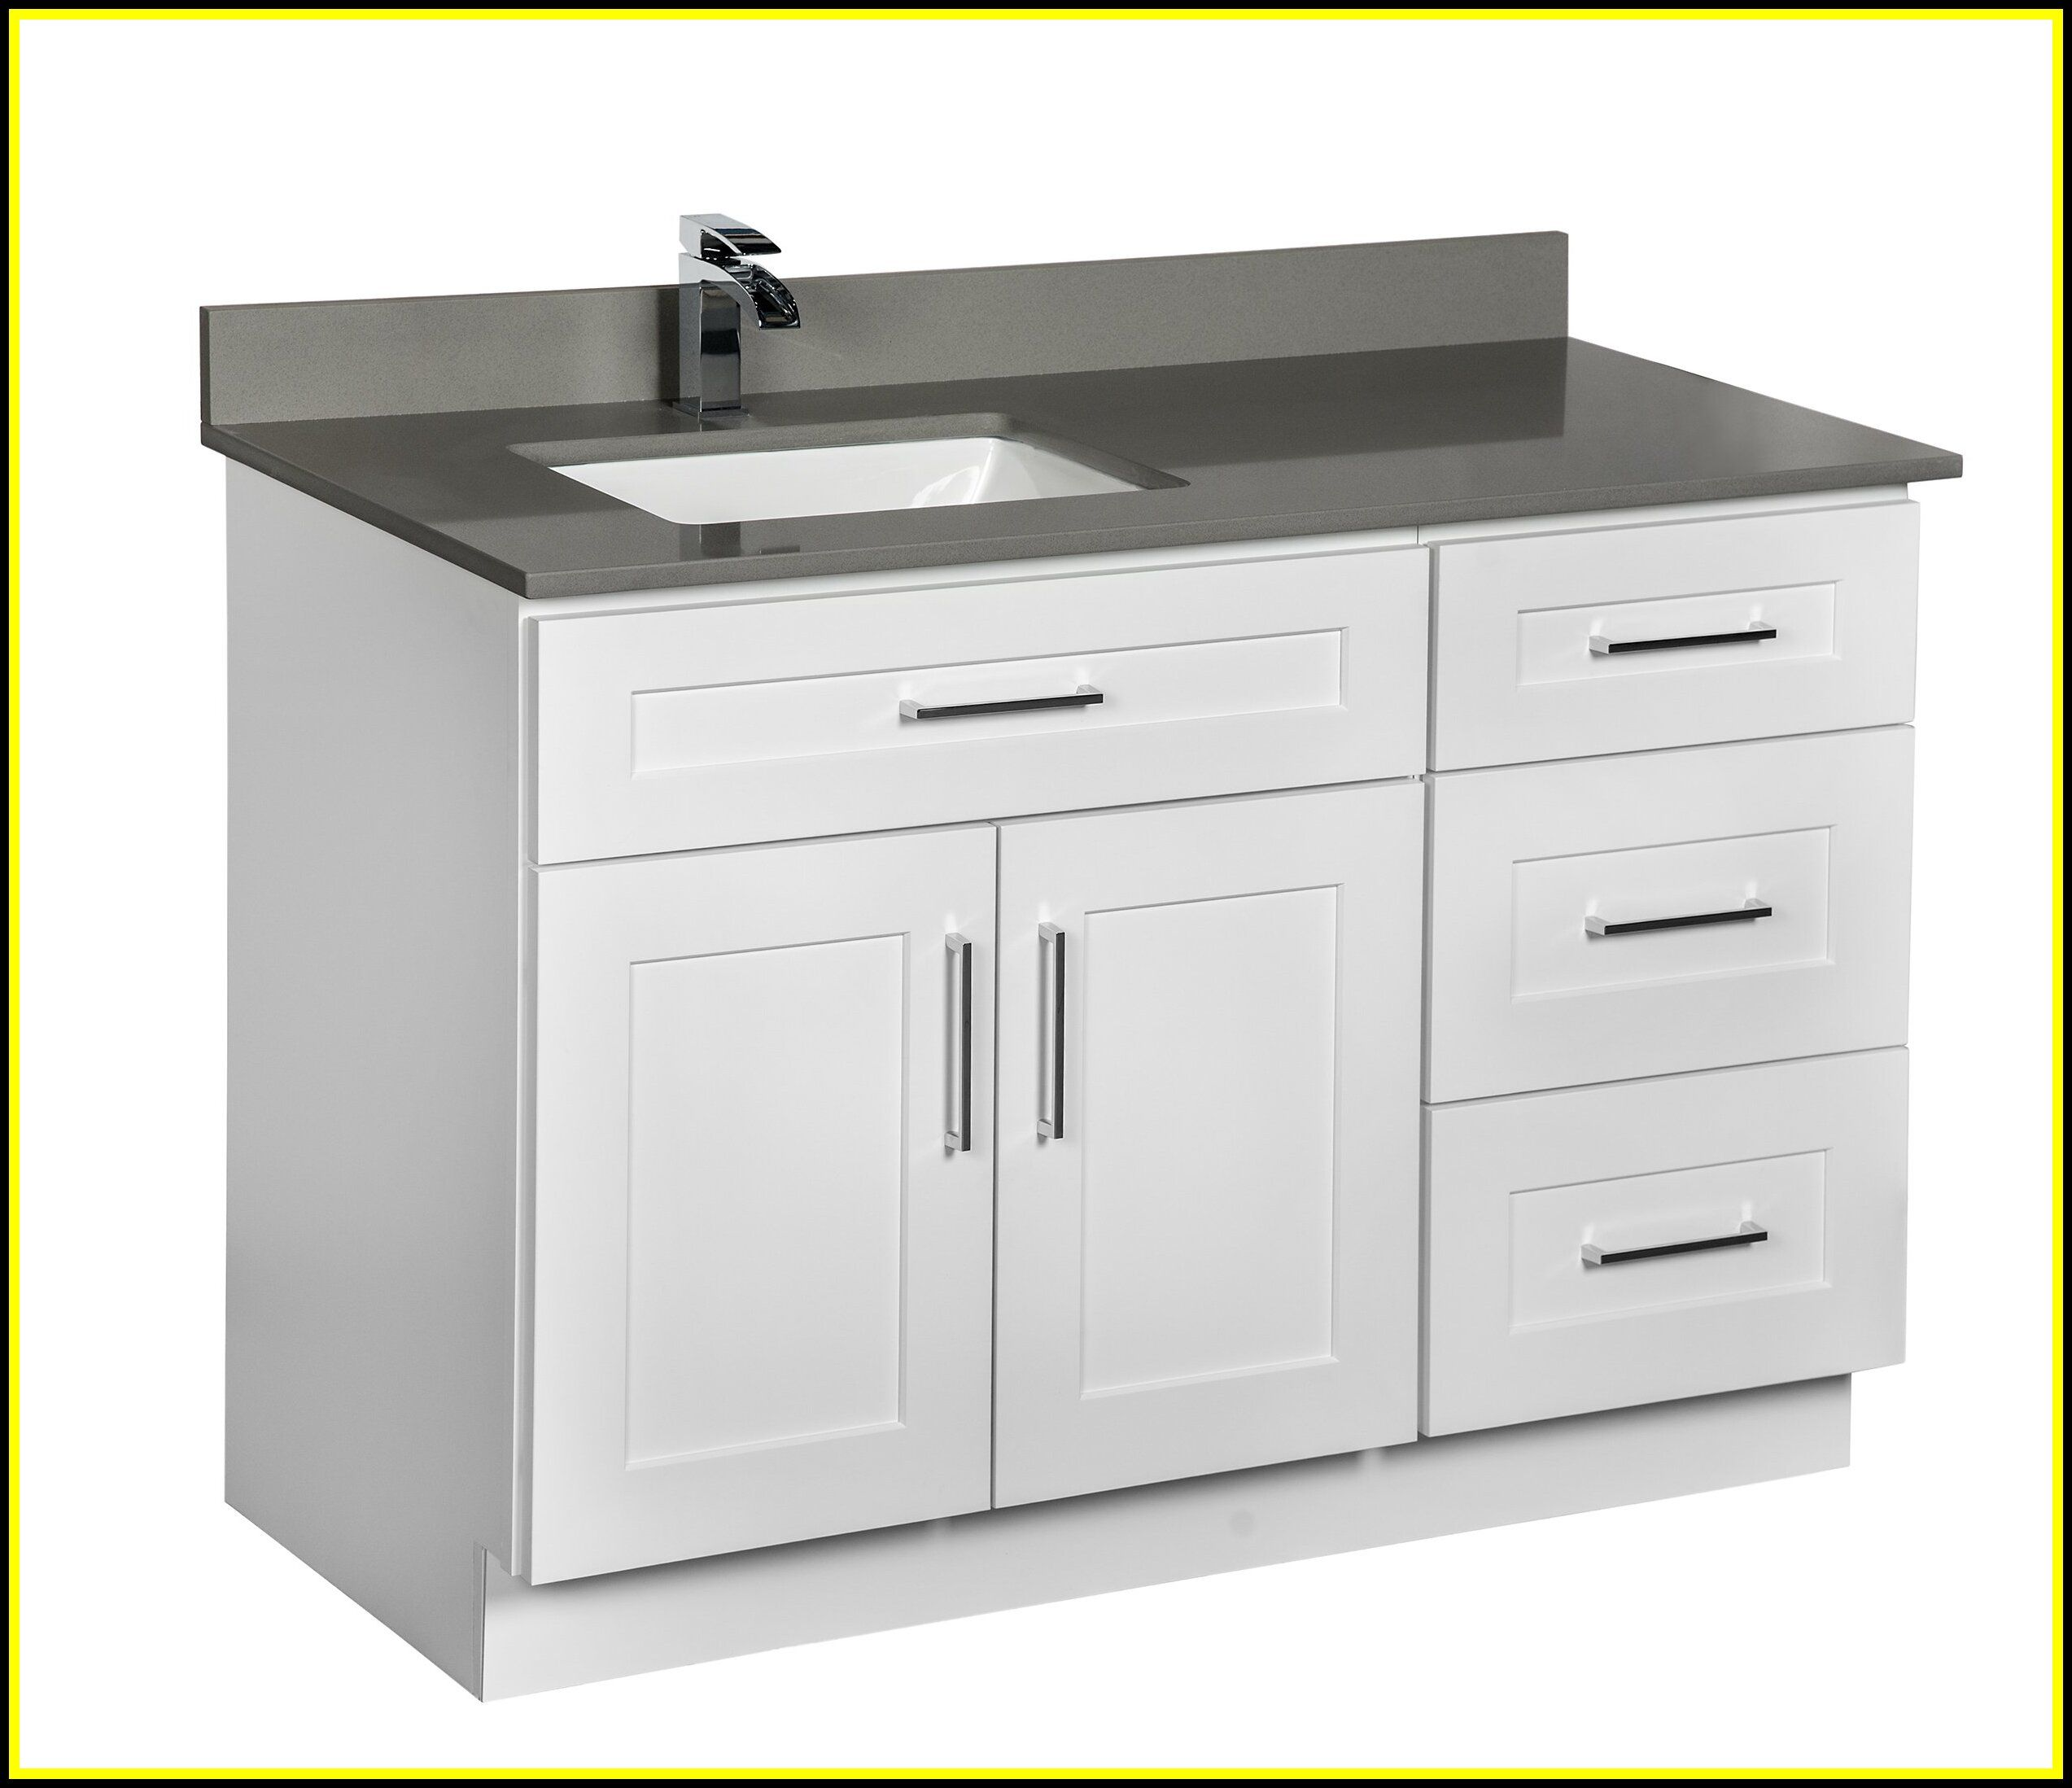 37 Reference Of 48 Inch Kitchen Sink Base Cabinet With Drawers In 2020 Base Cabinets Cabinet Drawers Kitchen Cabinet Drawers